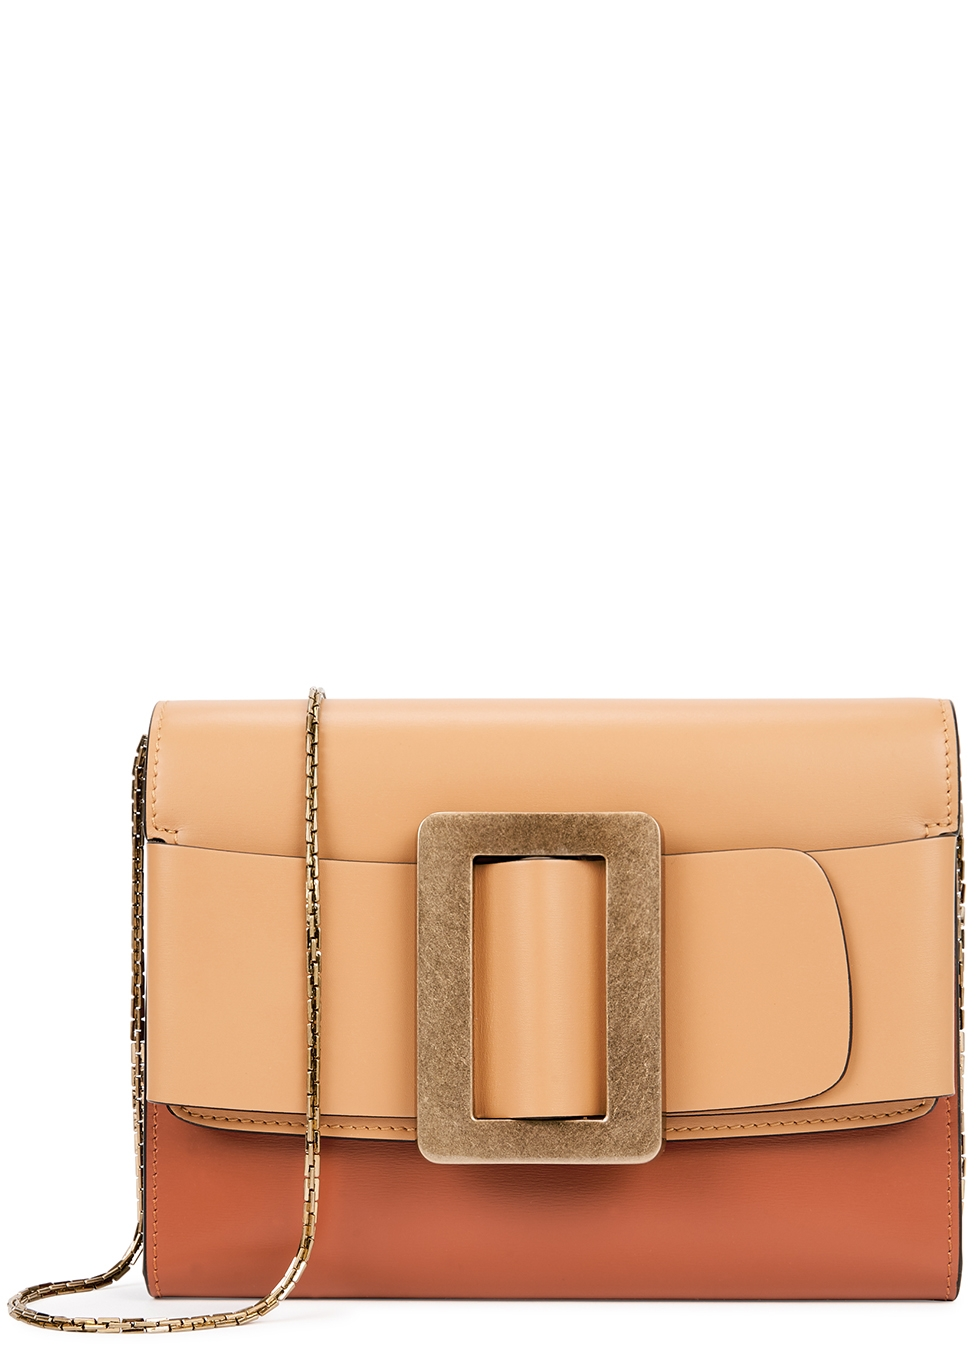 Buckle two-tone leather clutch